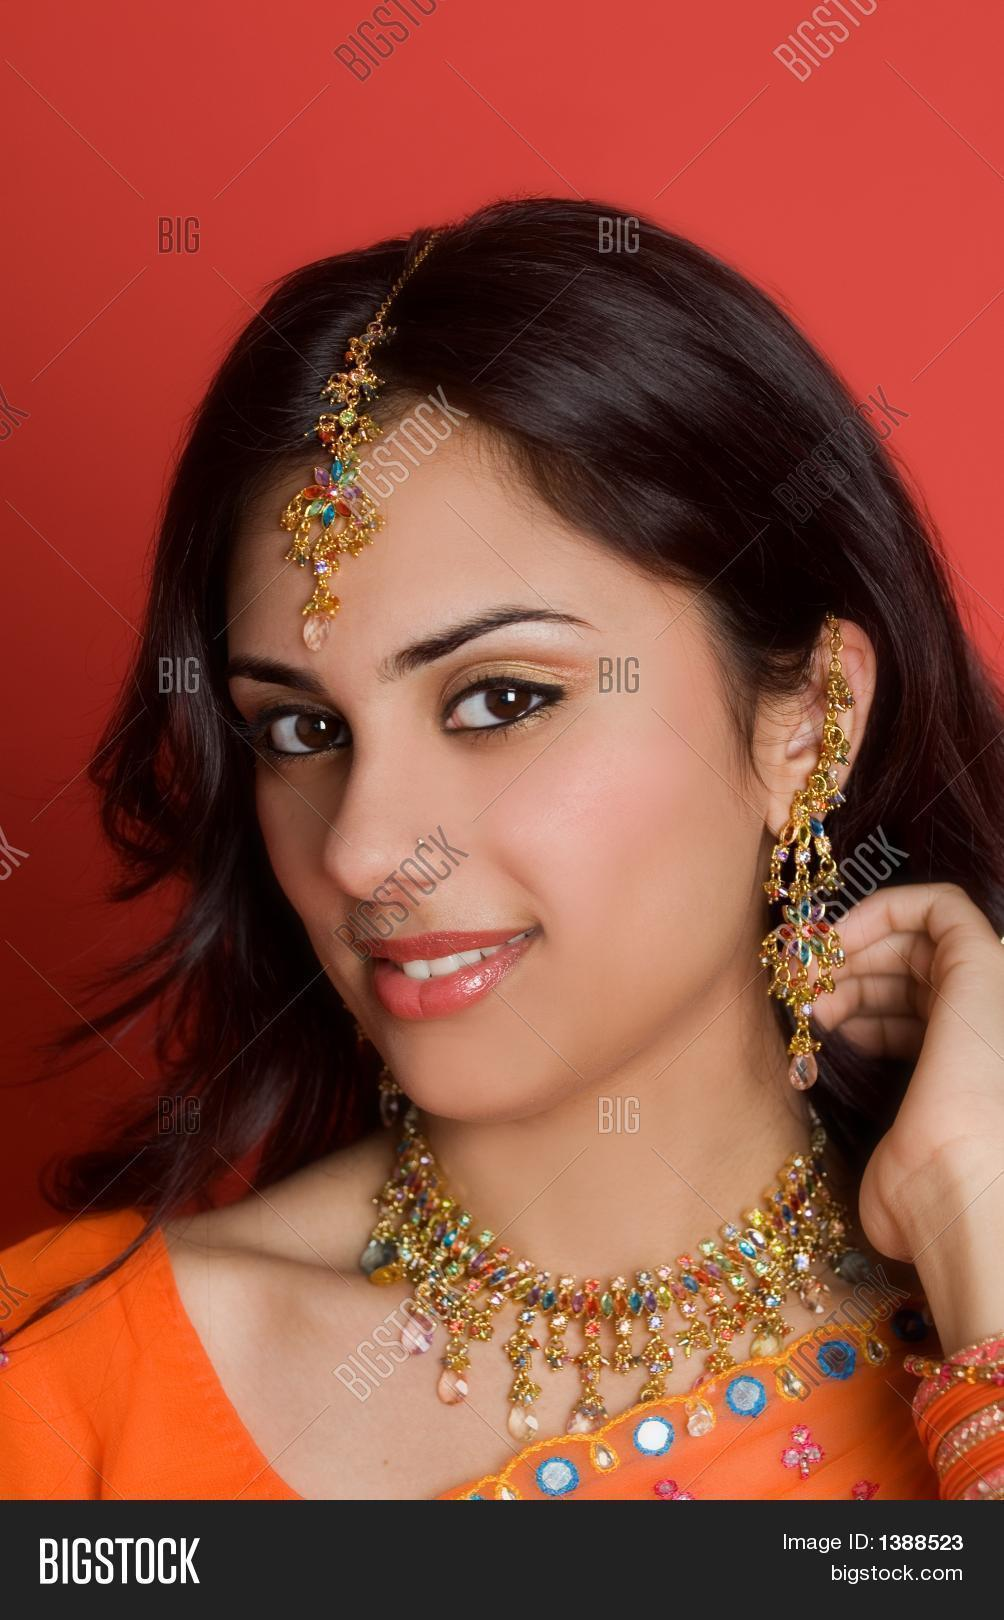 lacona hindu single women Browse photo profiles & contact who are hindu, religion on australia's #1 dating site rsvp free to browse & join.